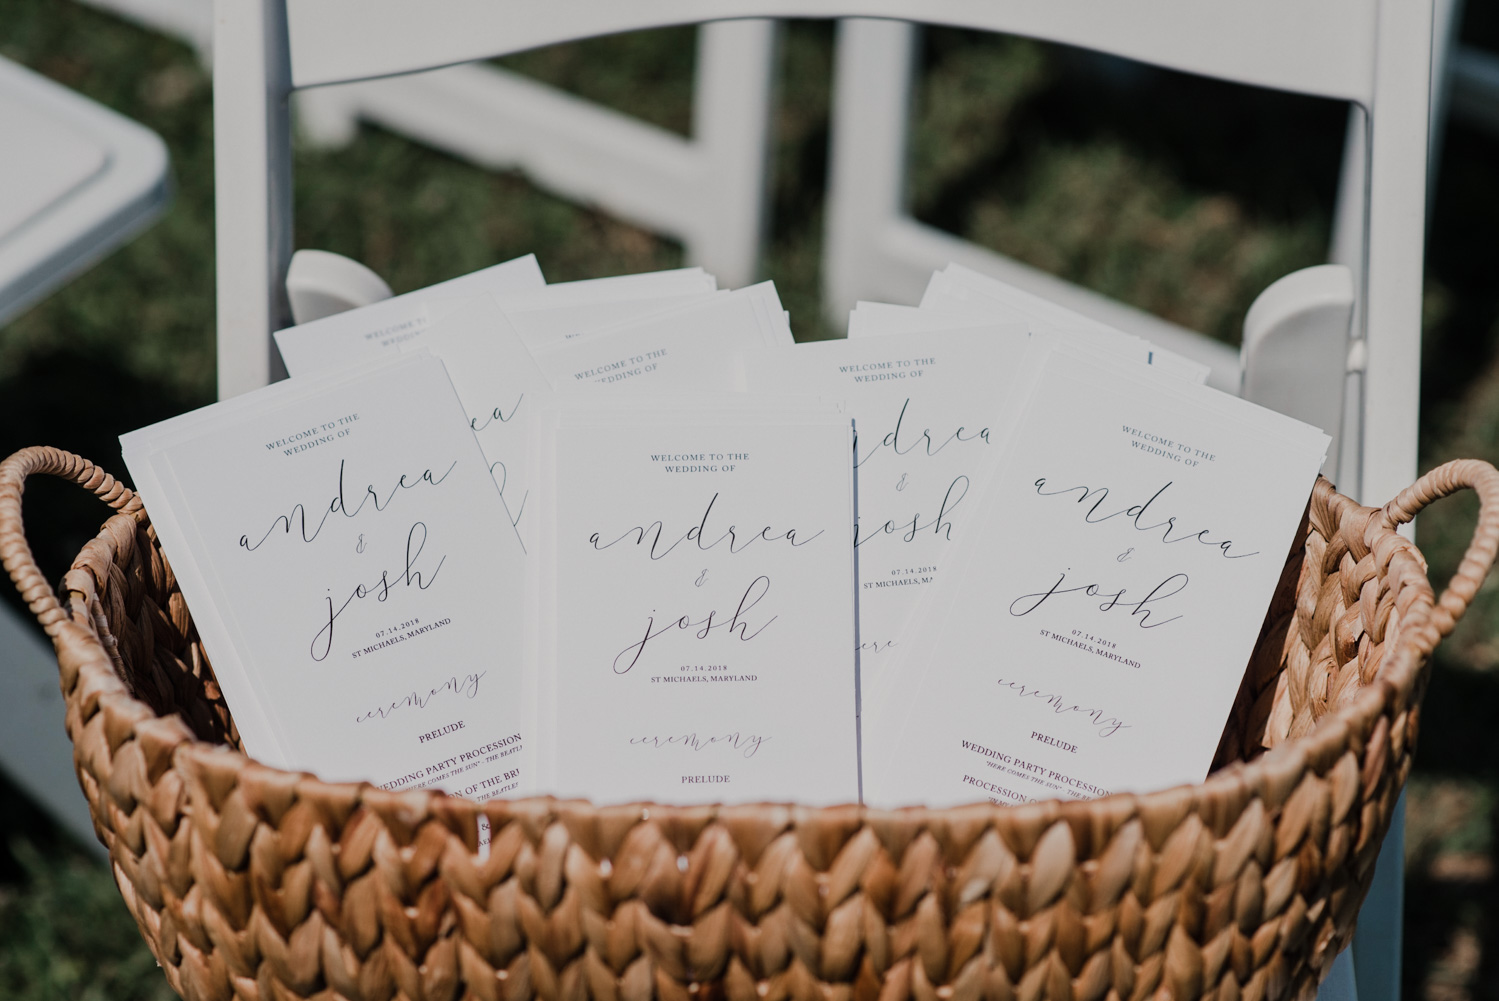 bride and groom's wedding programs in a basket for guests